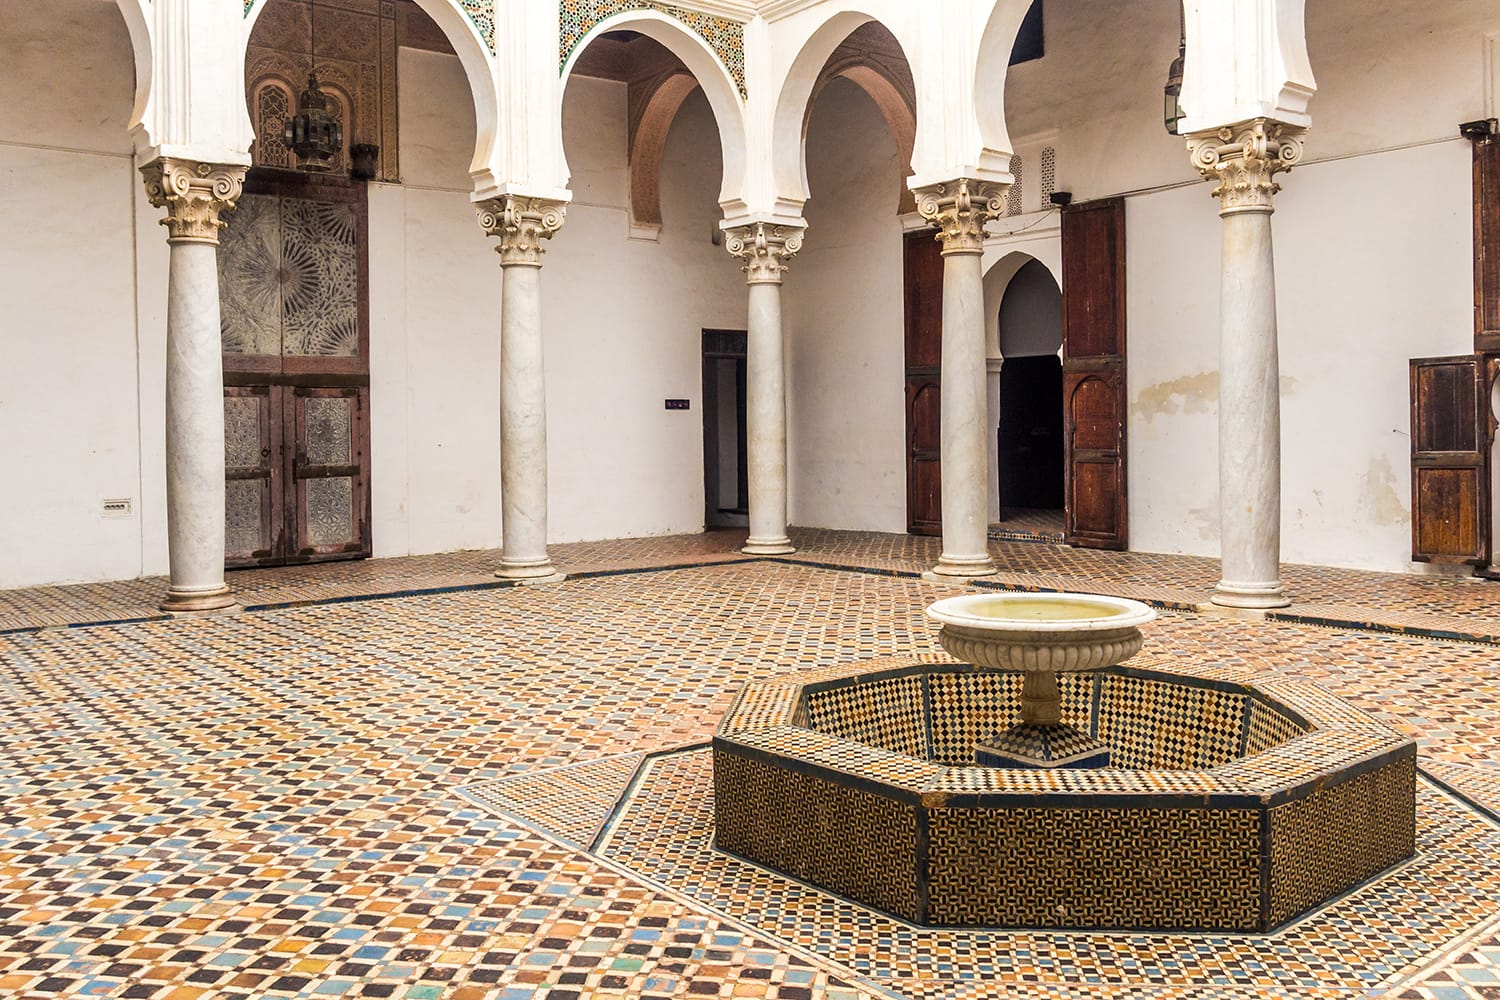 Courtyard interior of the Palace of the Kasbah in the Tangier's medina